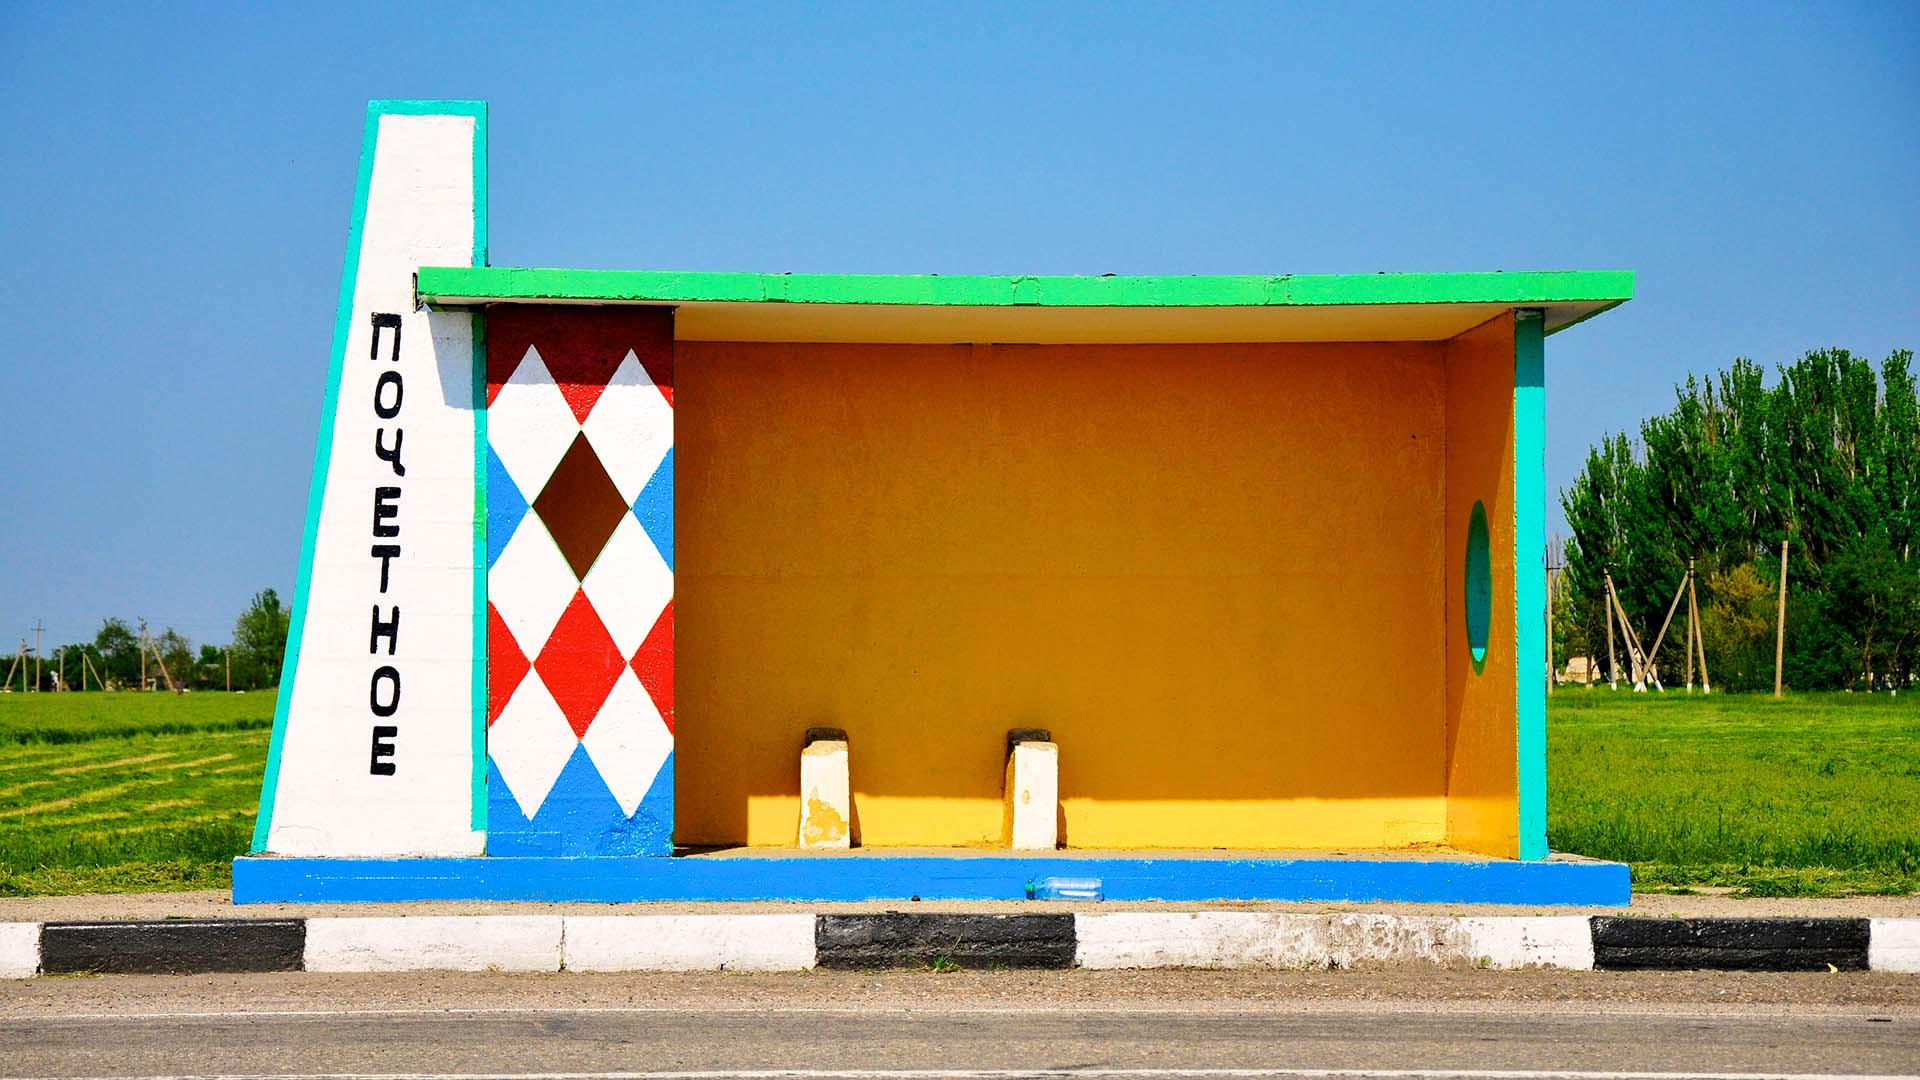 Diamond-patterned Crimean bus stop in blue, red, green and yellow